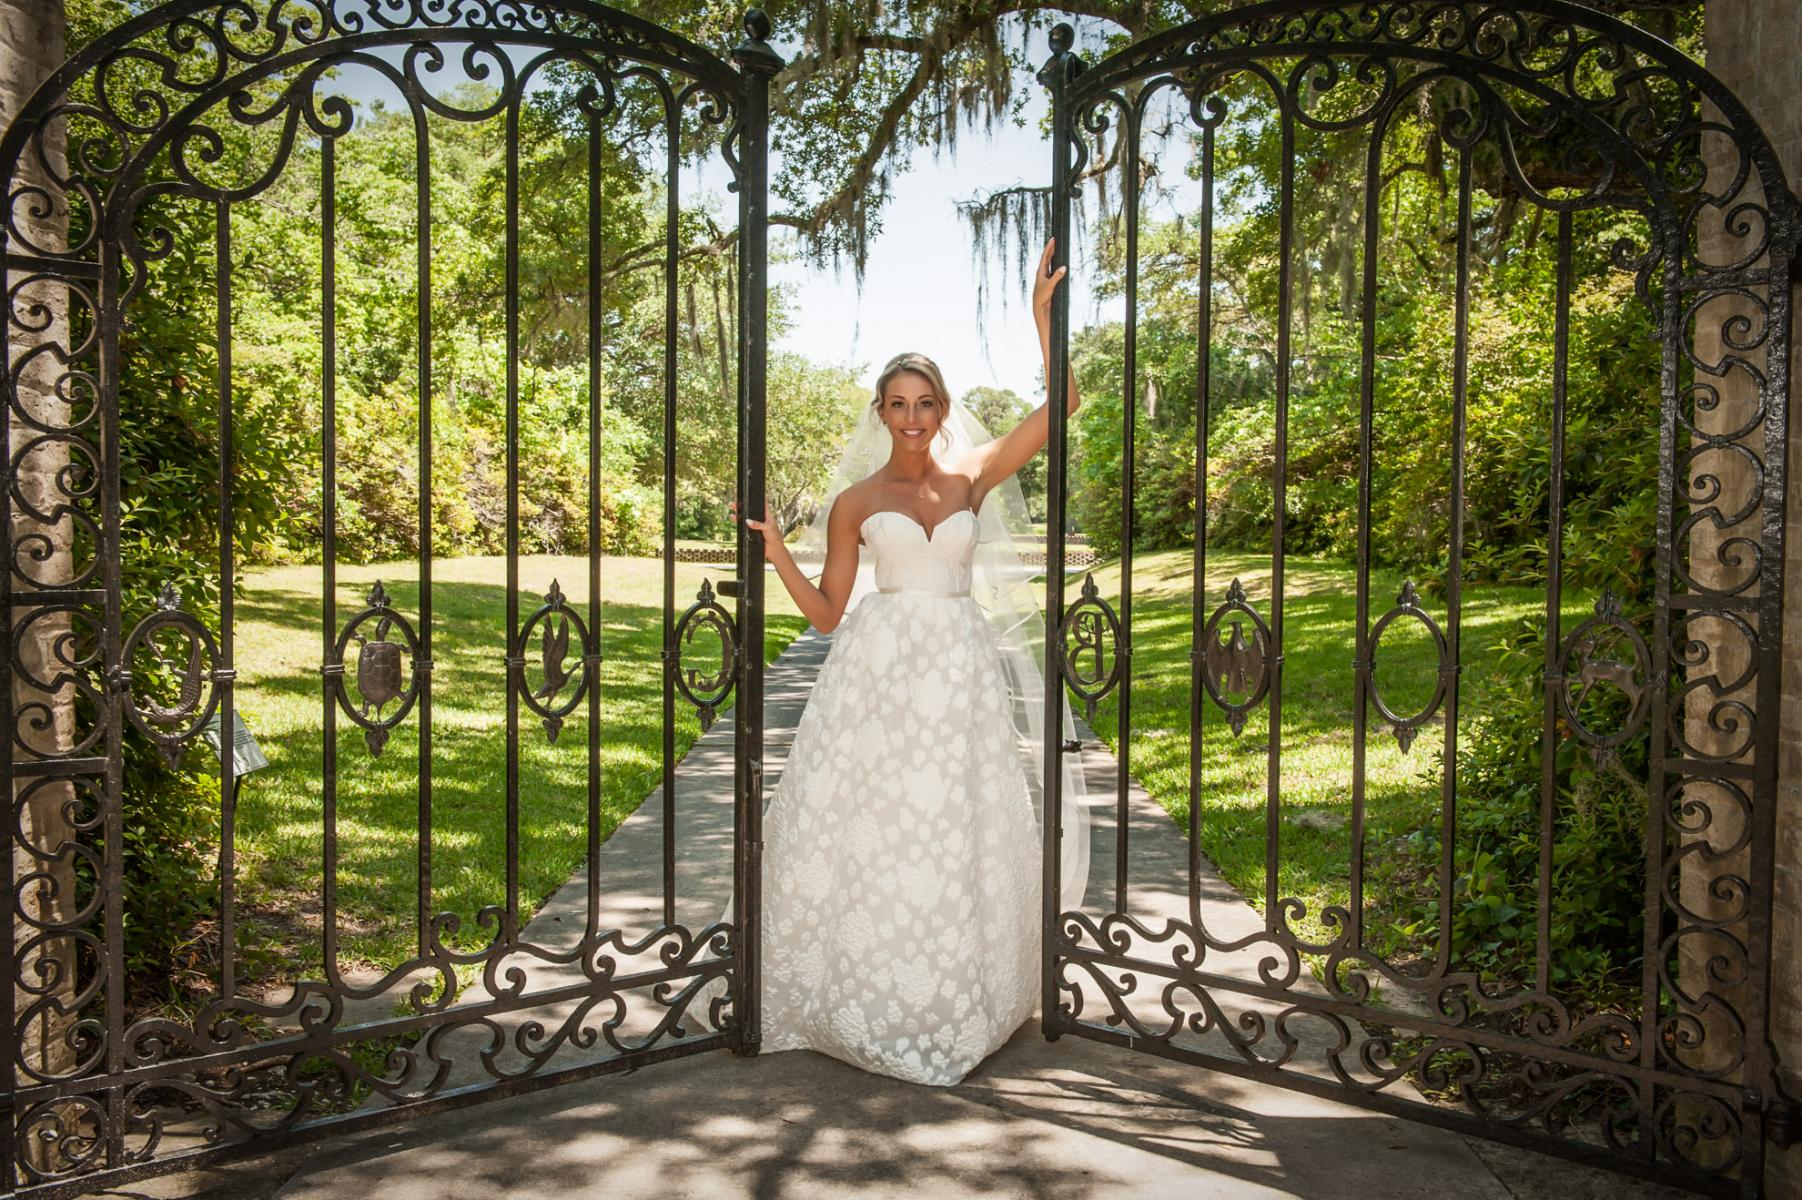 Gardens, Gates and Gowns